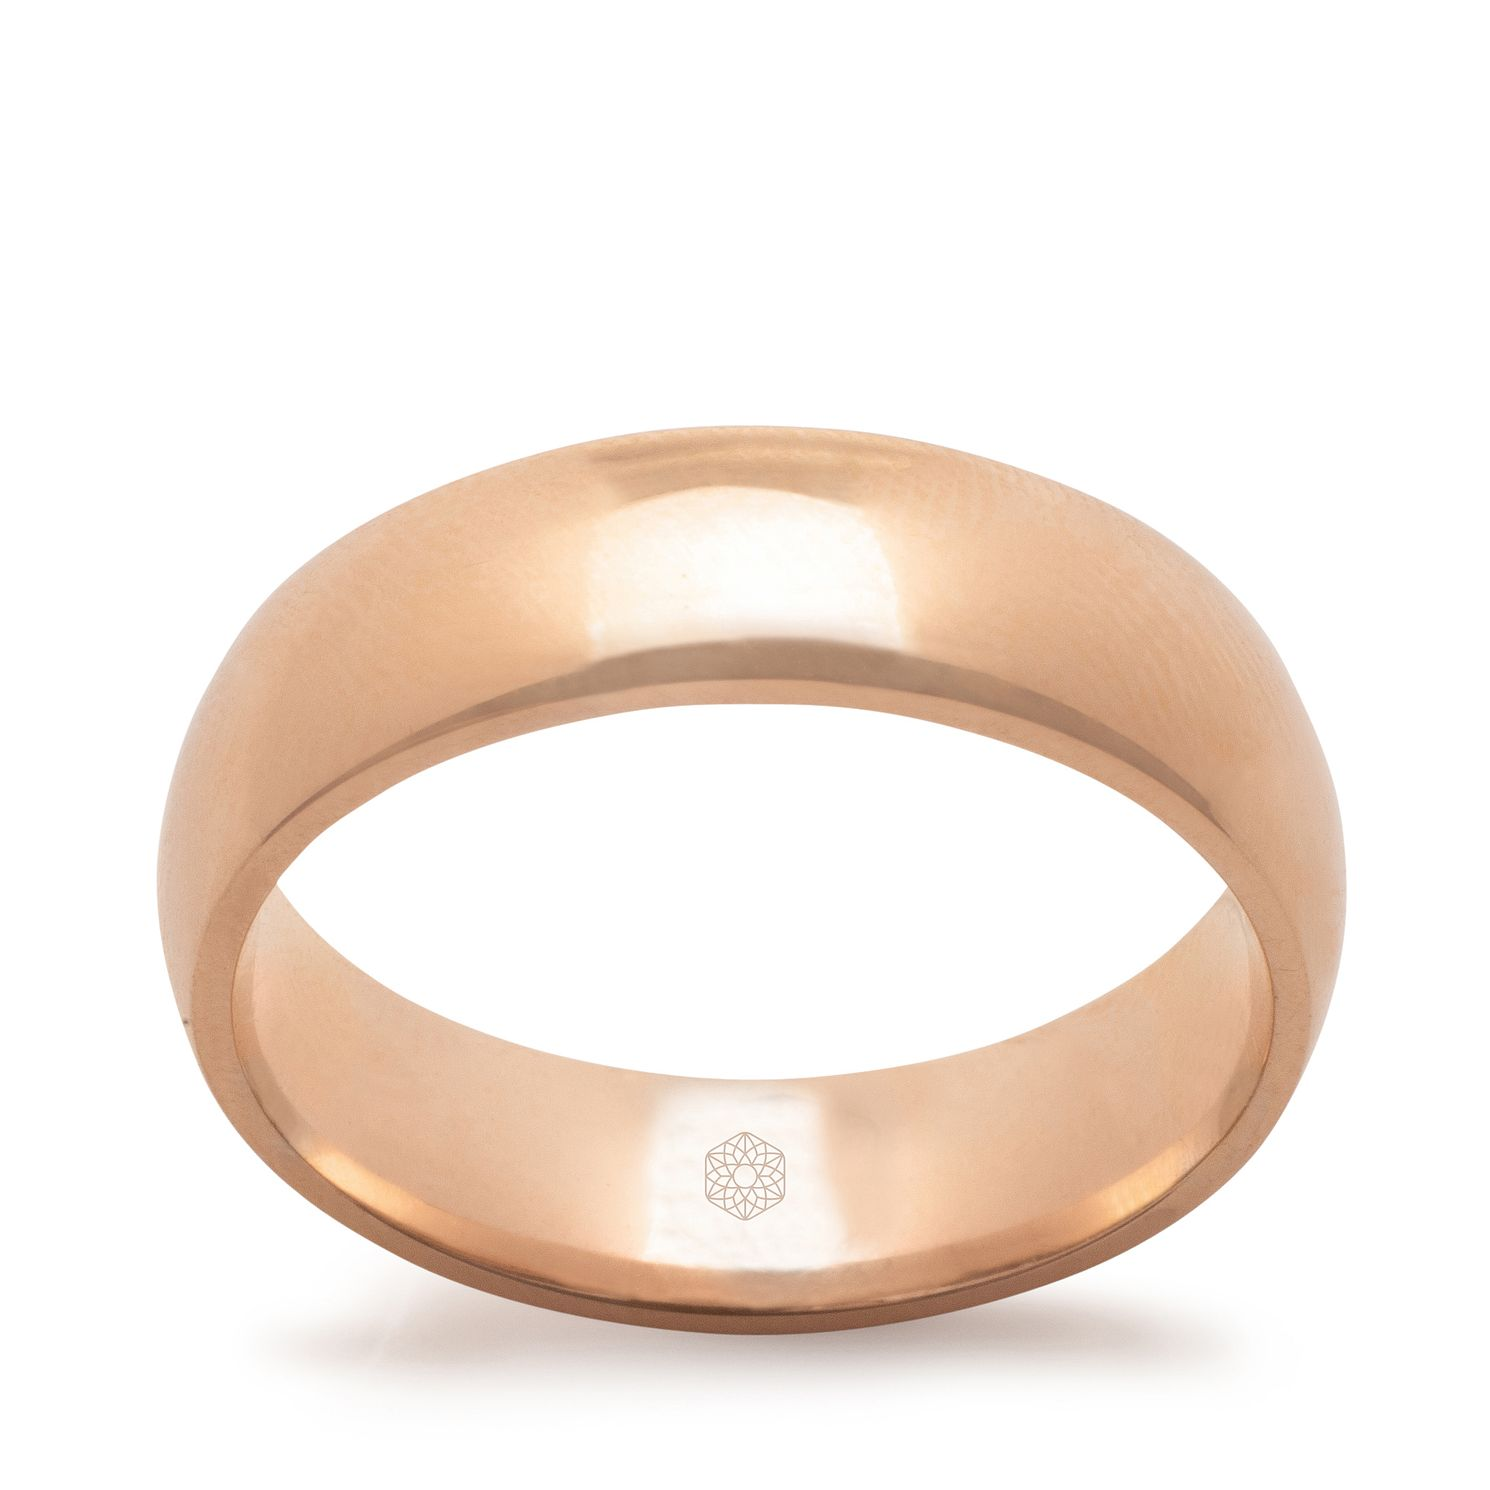 Baird Mint 18ct Rose Gold Blush 6mm Court Ring - Product number 3098672